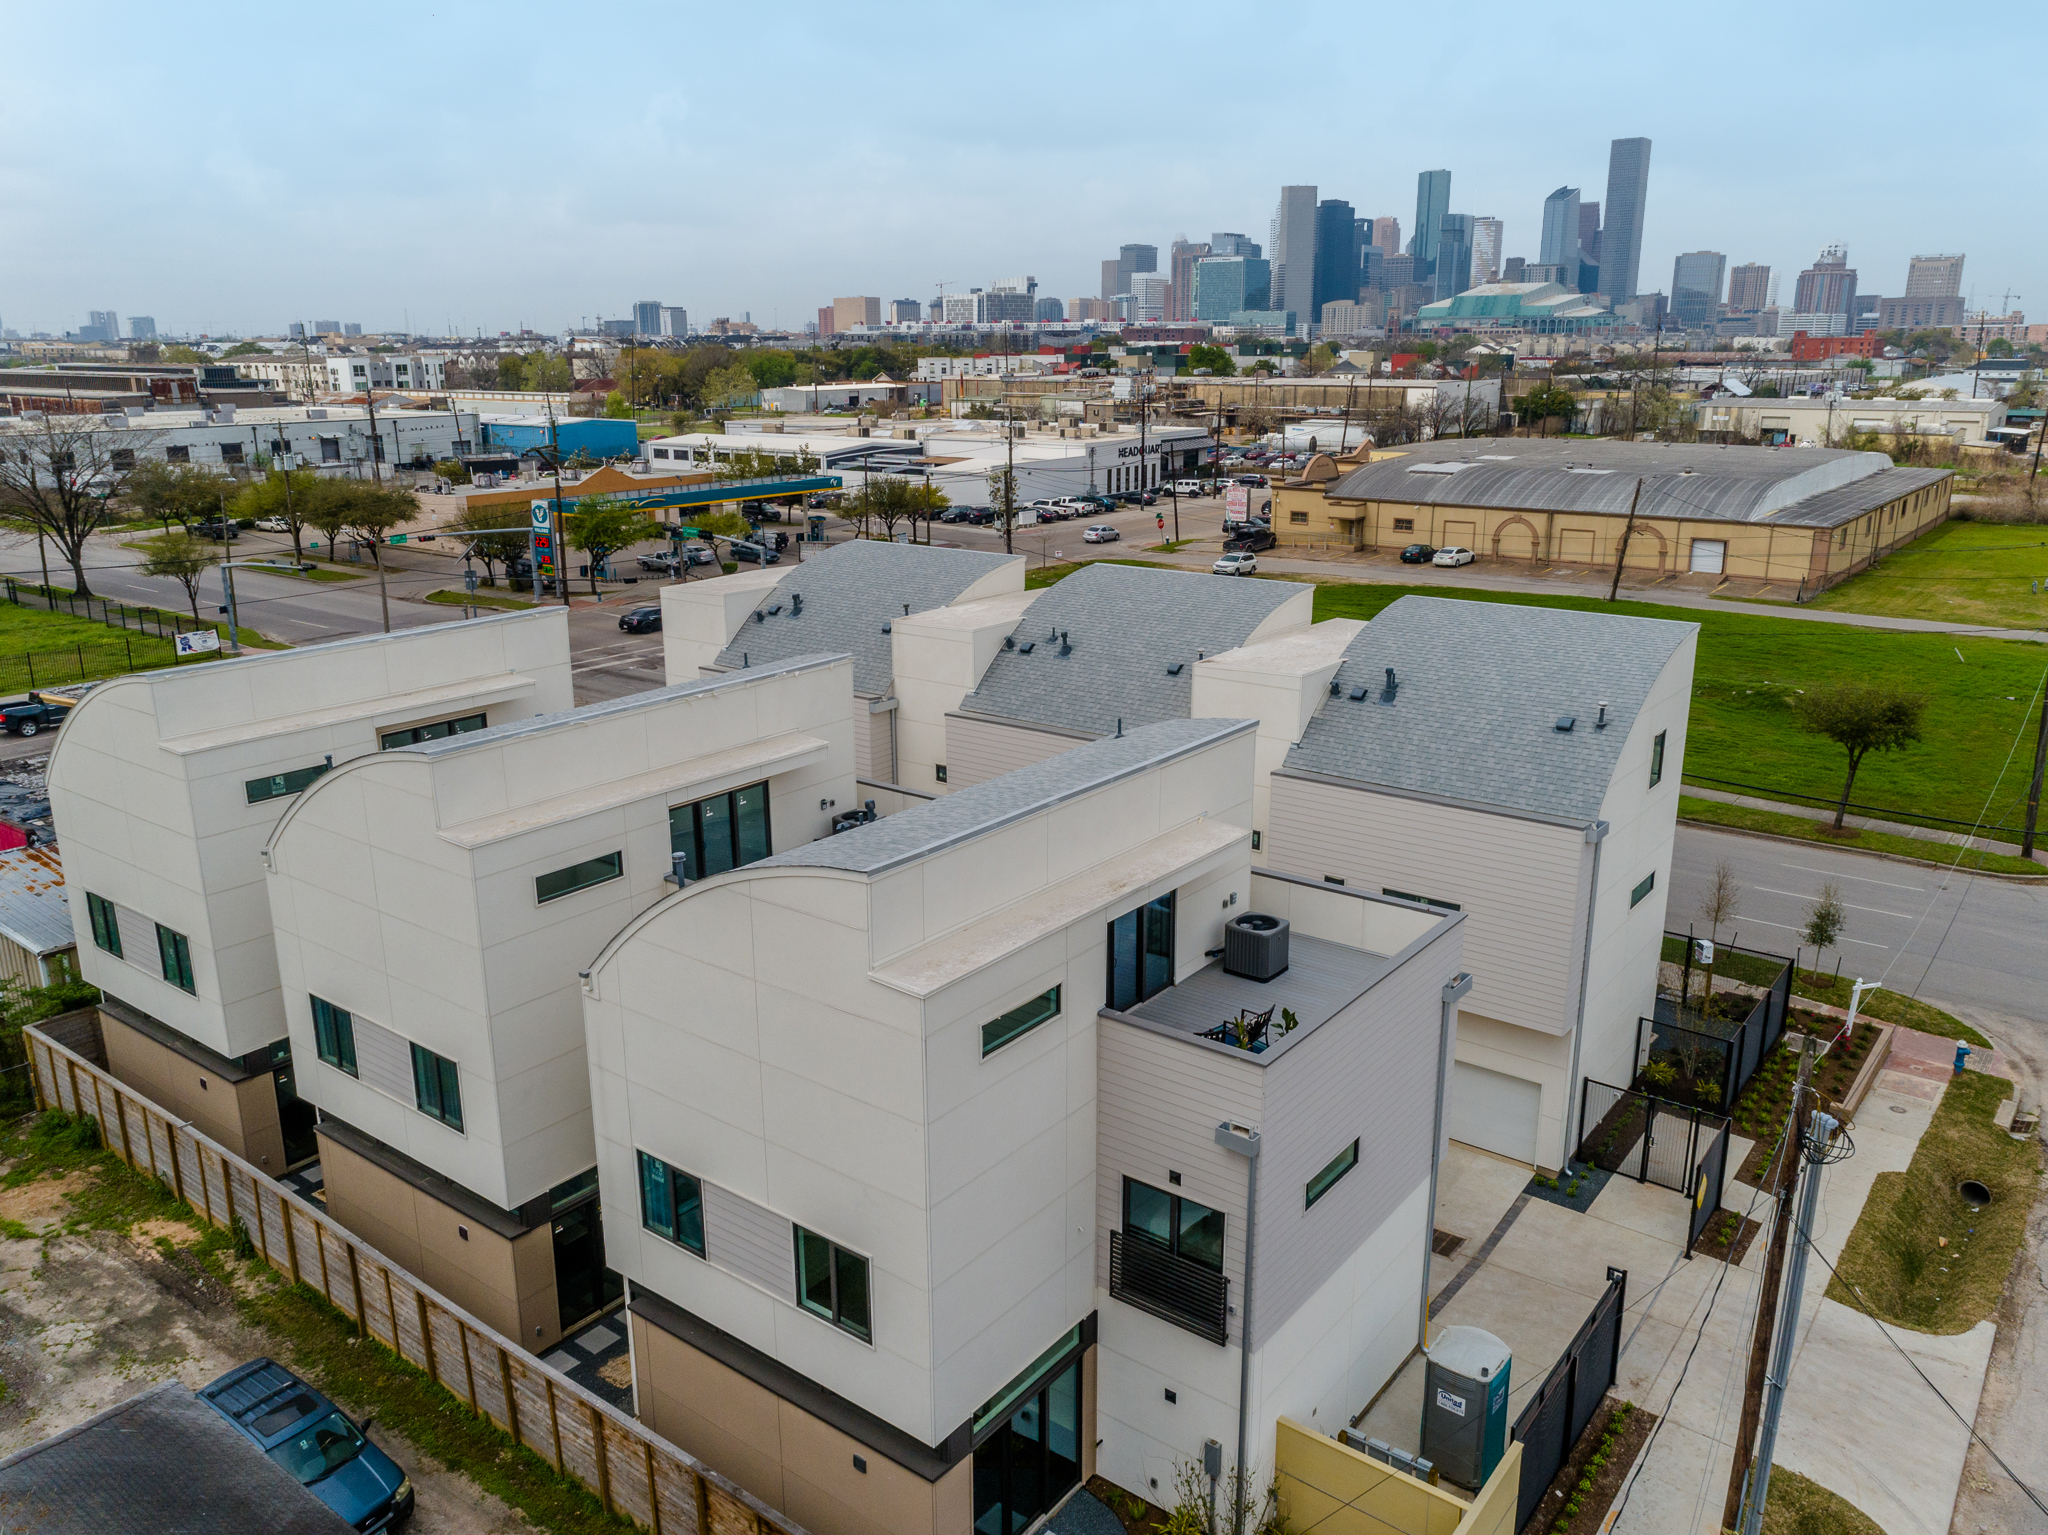 This community of six striking town homes is nestled on the edge of EaDo near in a vibrant corridor with rapid redevelopment.